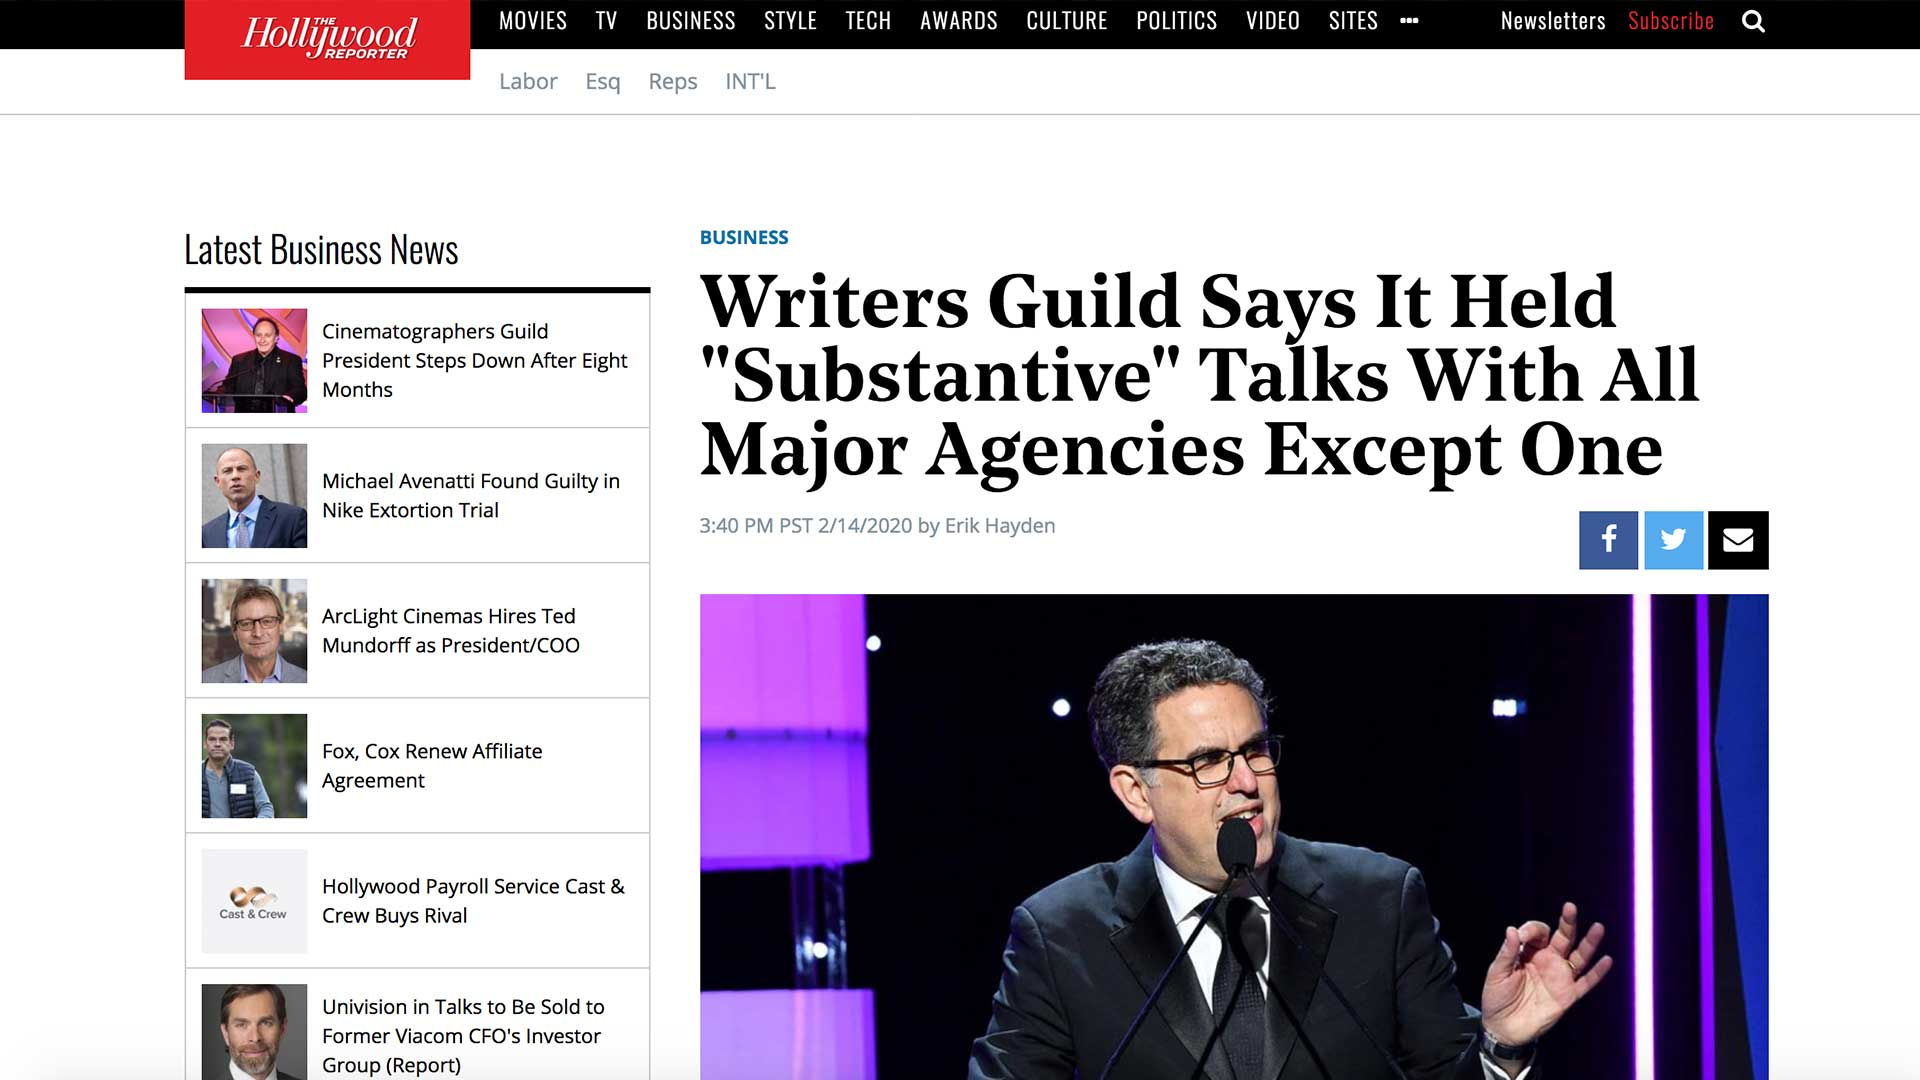 """Fairness Rocks News Writers Guild Says It Held """"Substantive"""" Talks With All Major Agencies Except One"""